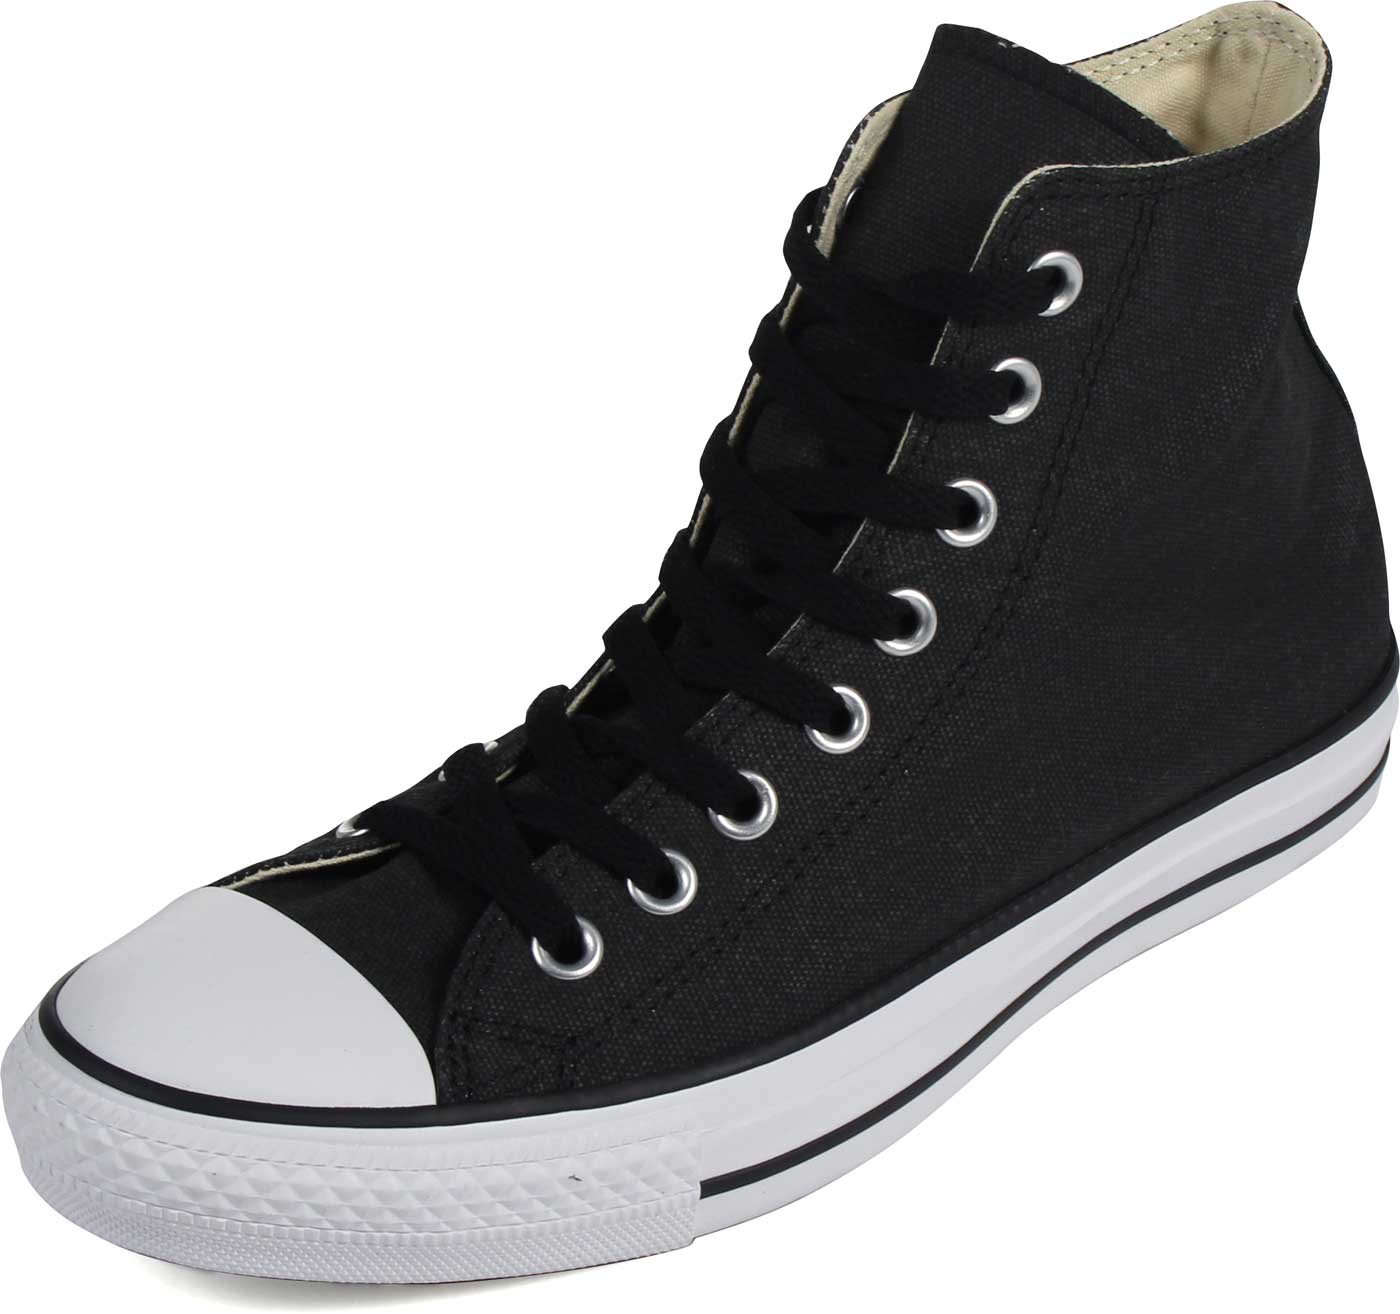 Converse Adult Coated Canvas Wash Chuck Taylor All Star Shoes